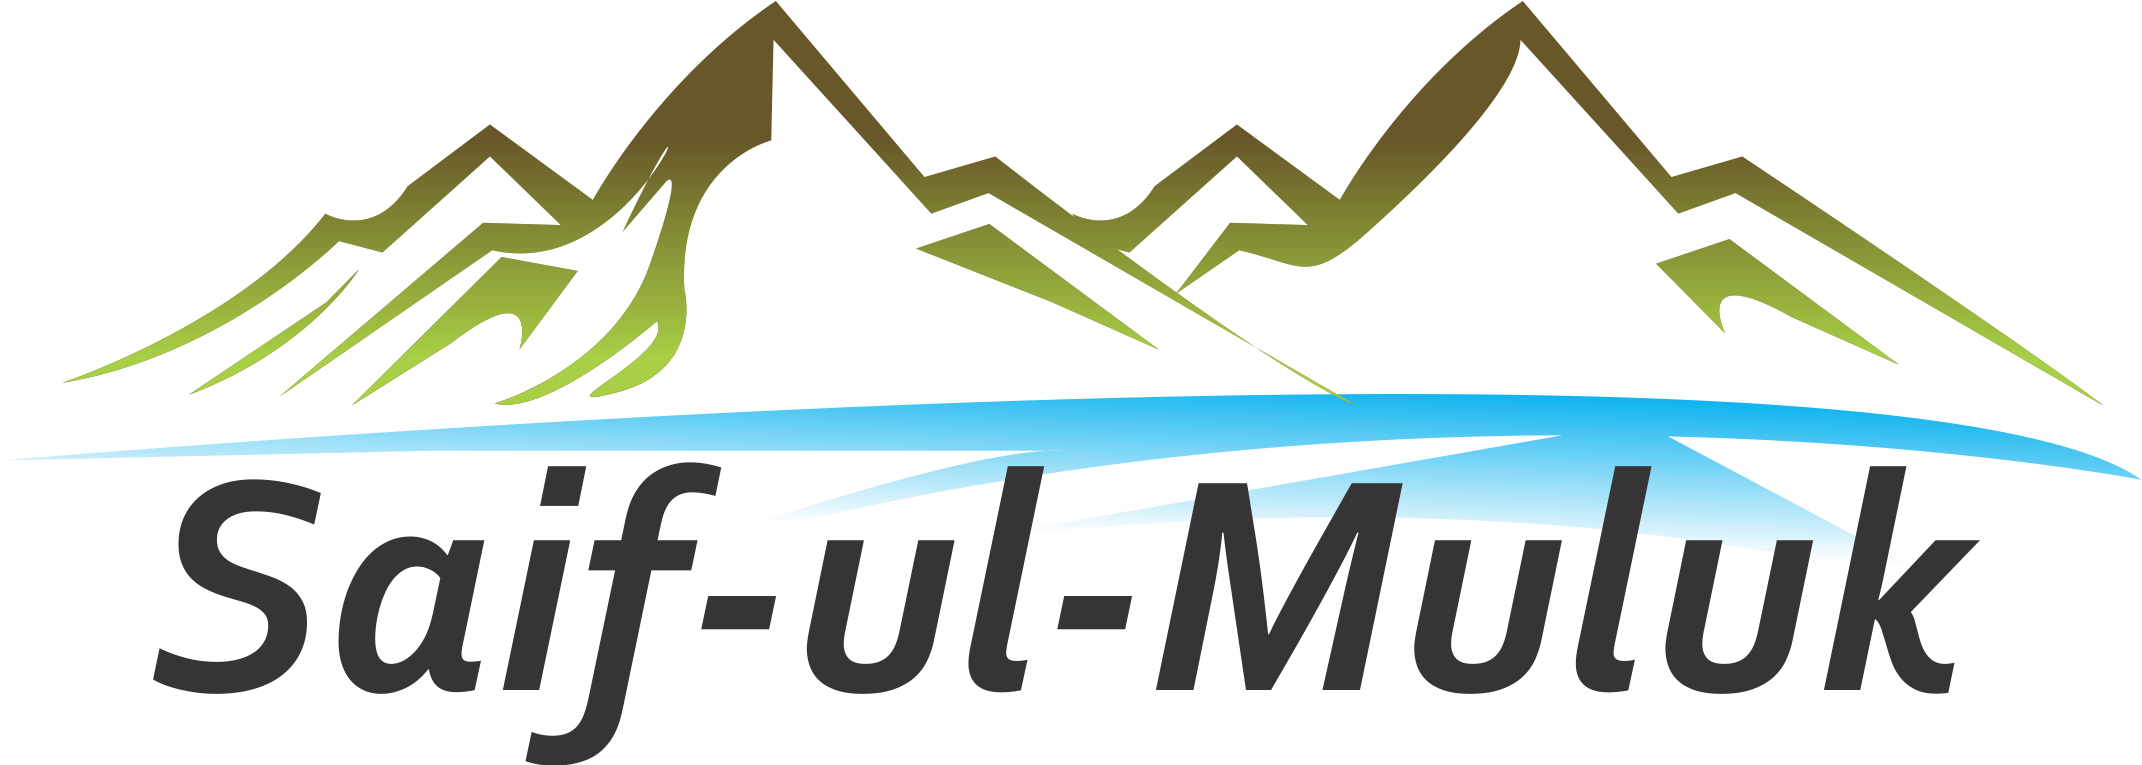 SaifulMuluk Tour and Travel Company | Saif-Ul-Muluk | Ahsania Hotel and Restaurant - SaifulMuluk Tour and Travel Company | Saif-Ul-Muluk